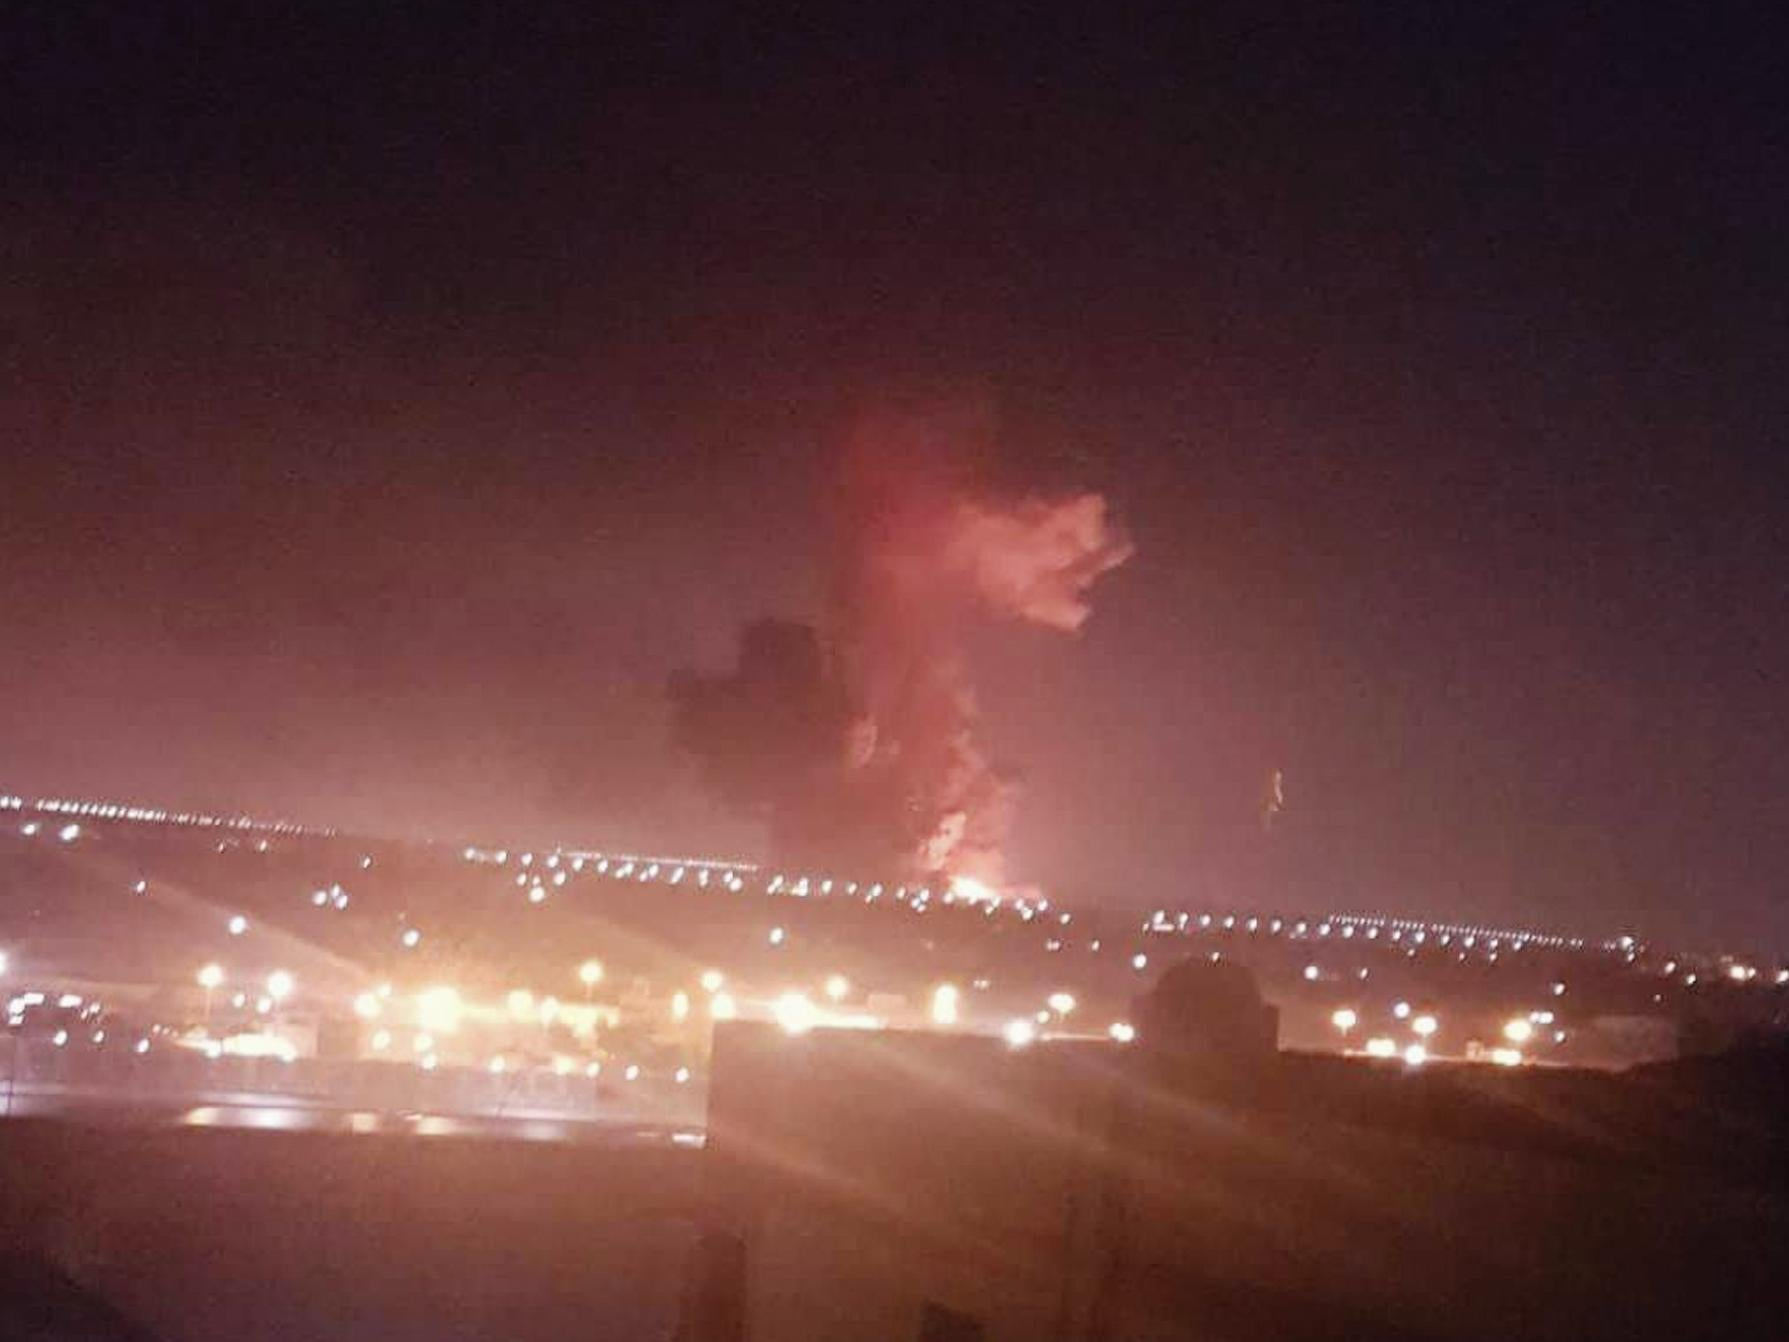 Cairo explosion: 12 injured in chemical factory blast near airport